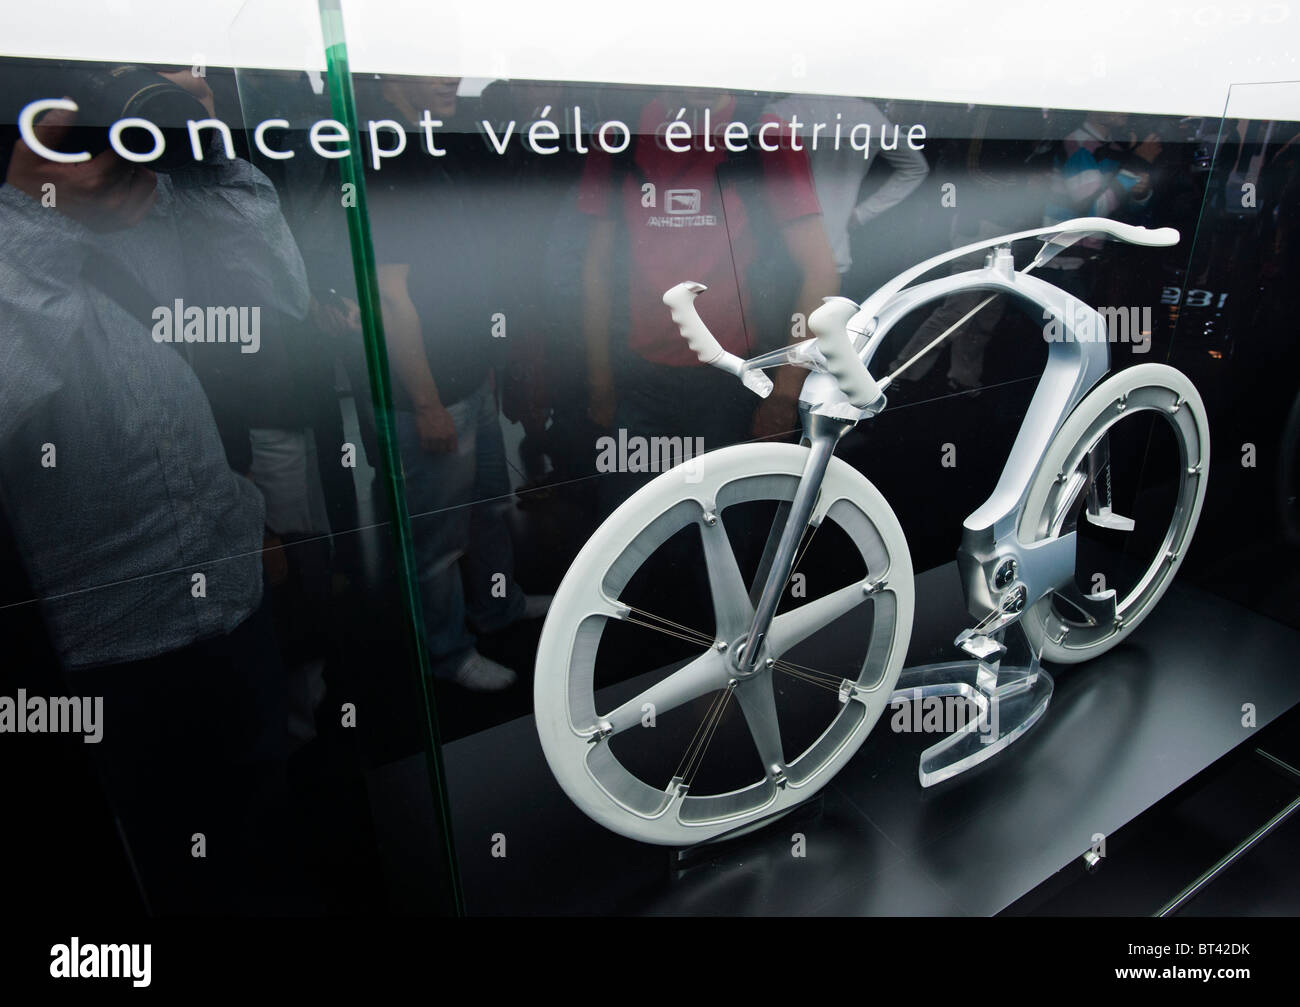 Concept for electric bicycle by Peugeot at Paris Motor Show 2010 - Stock Image